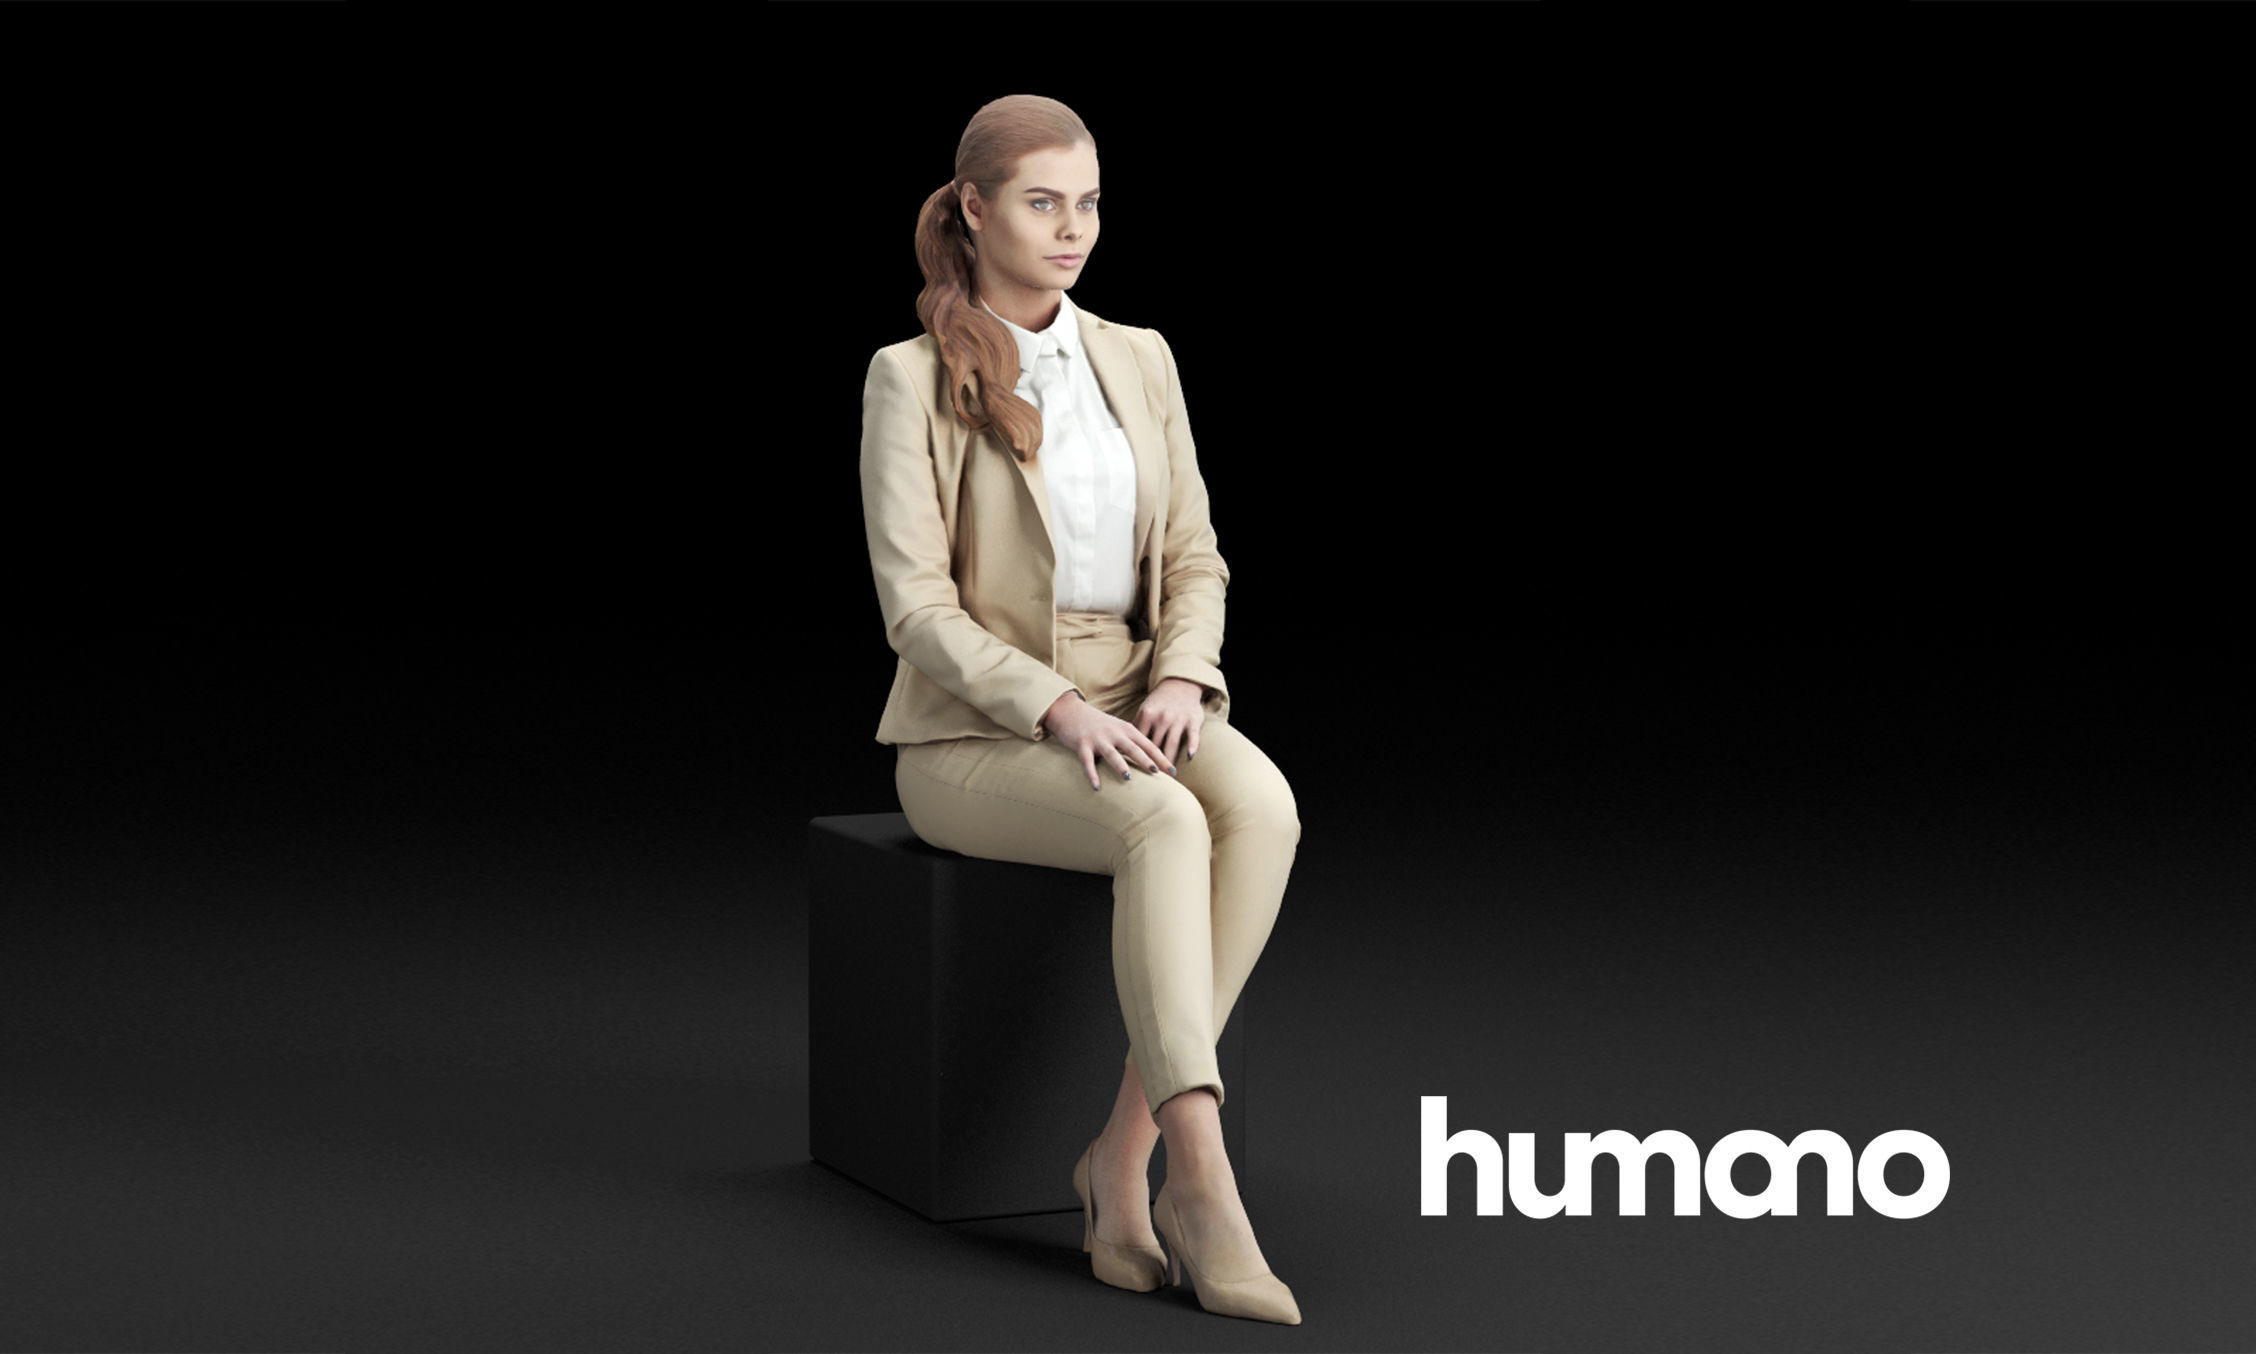 Humano Elegant business woman stitting and looking 0118